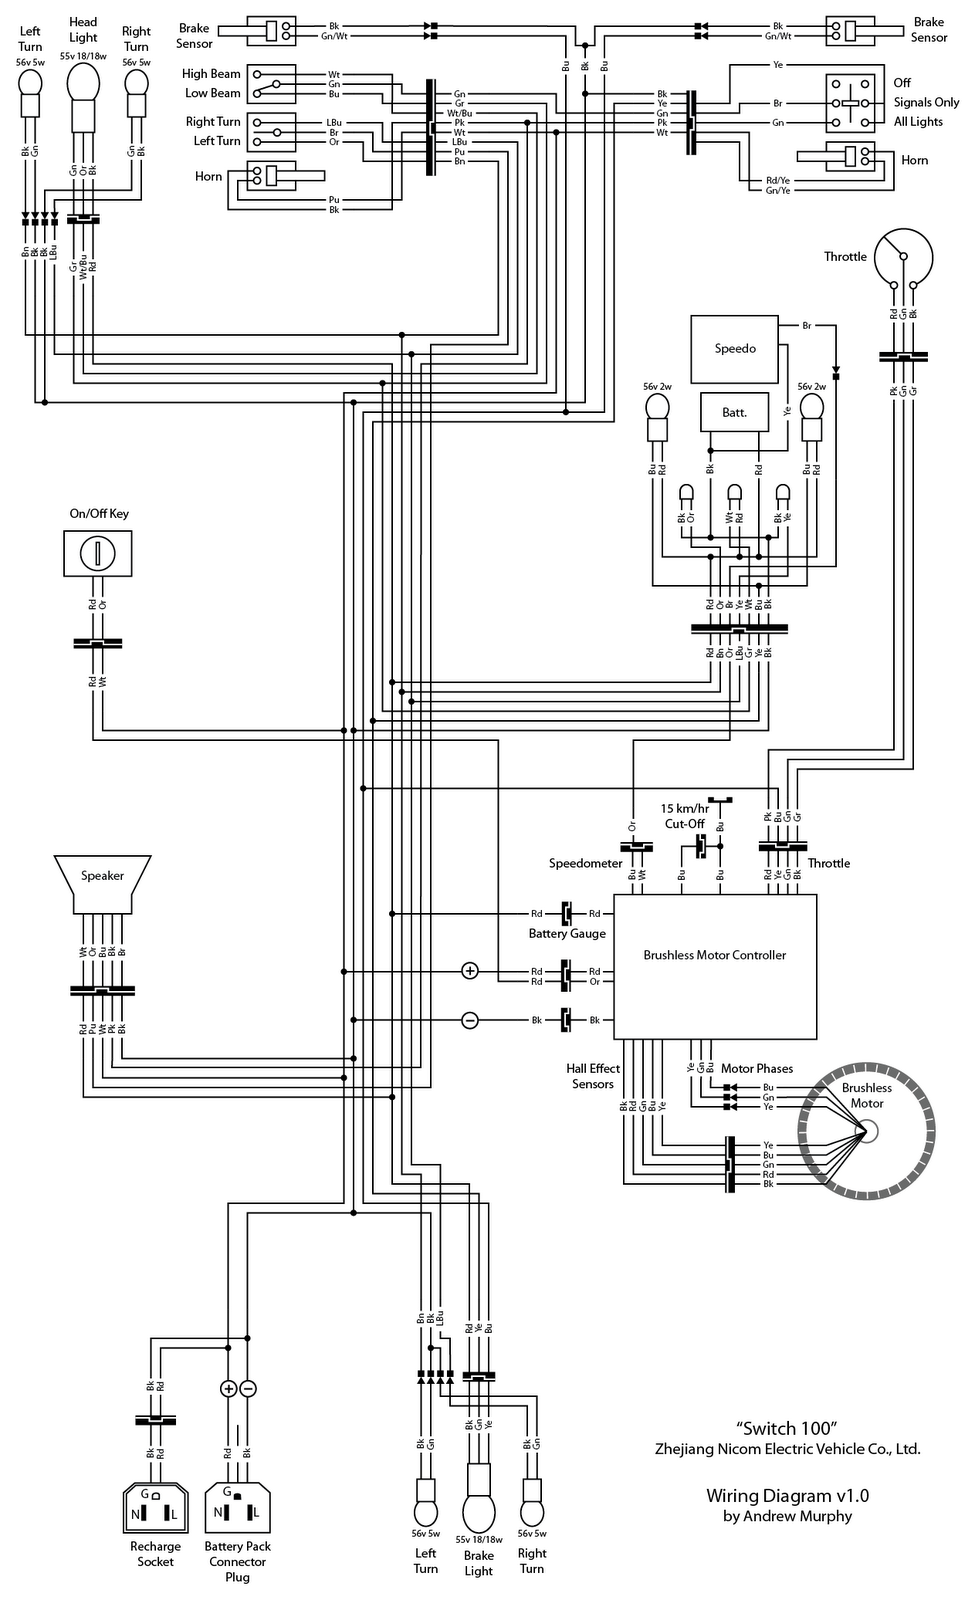 Switch 100 Wiring Diagram v1